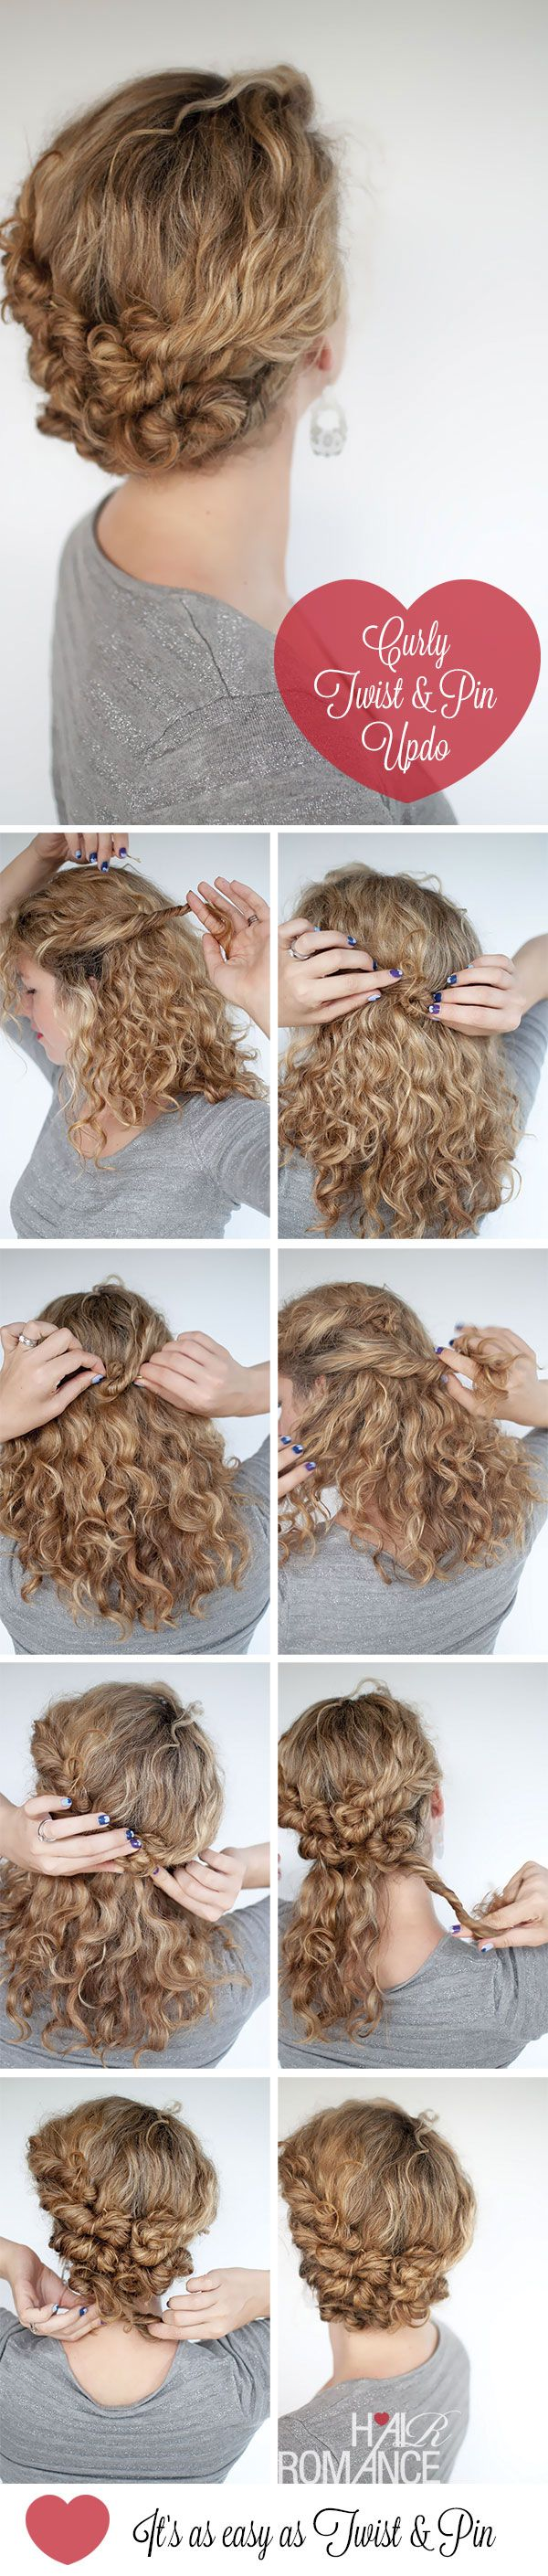 Twist and pin updo